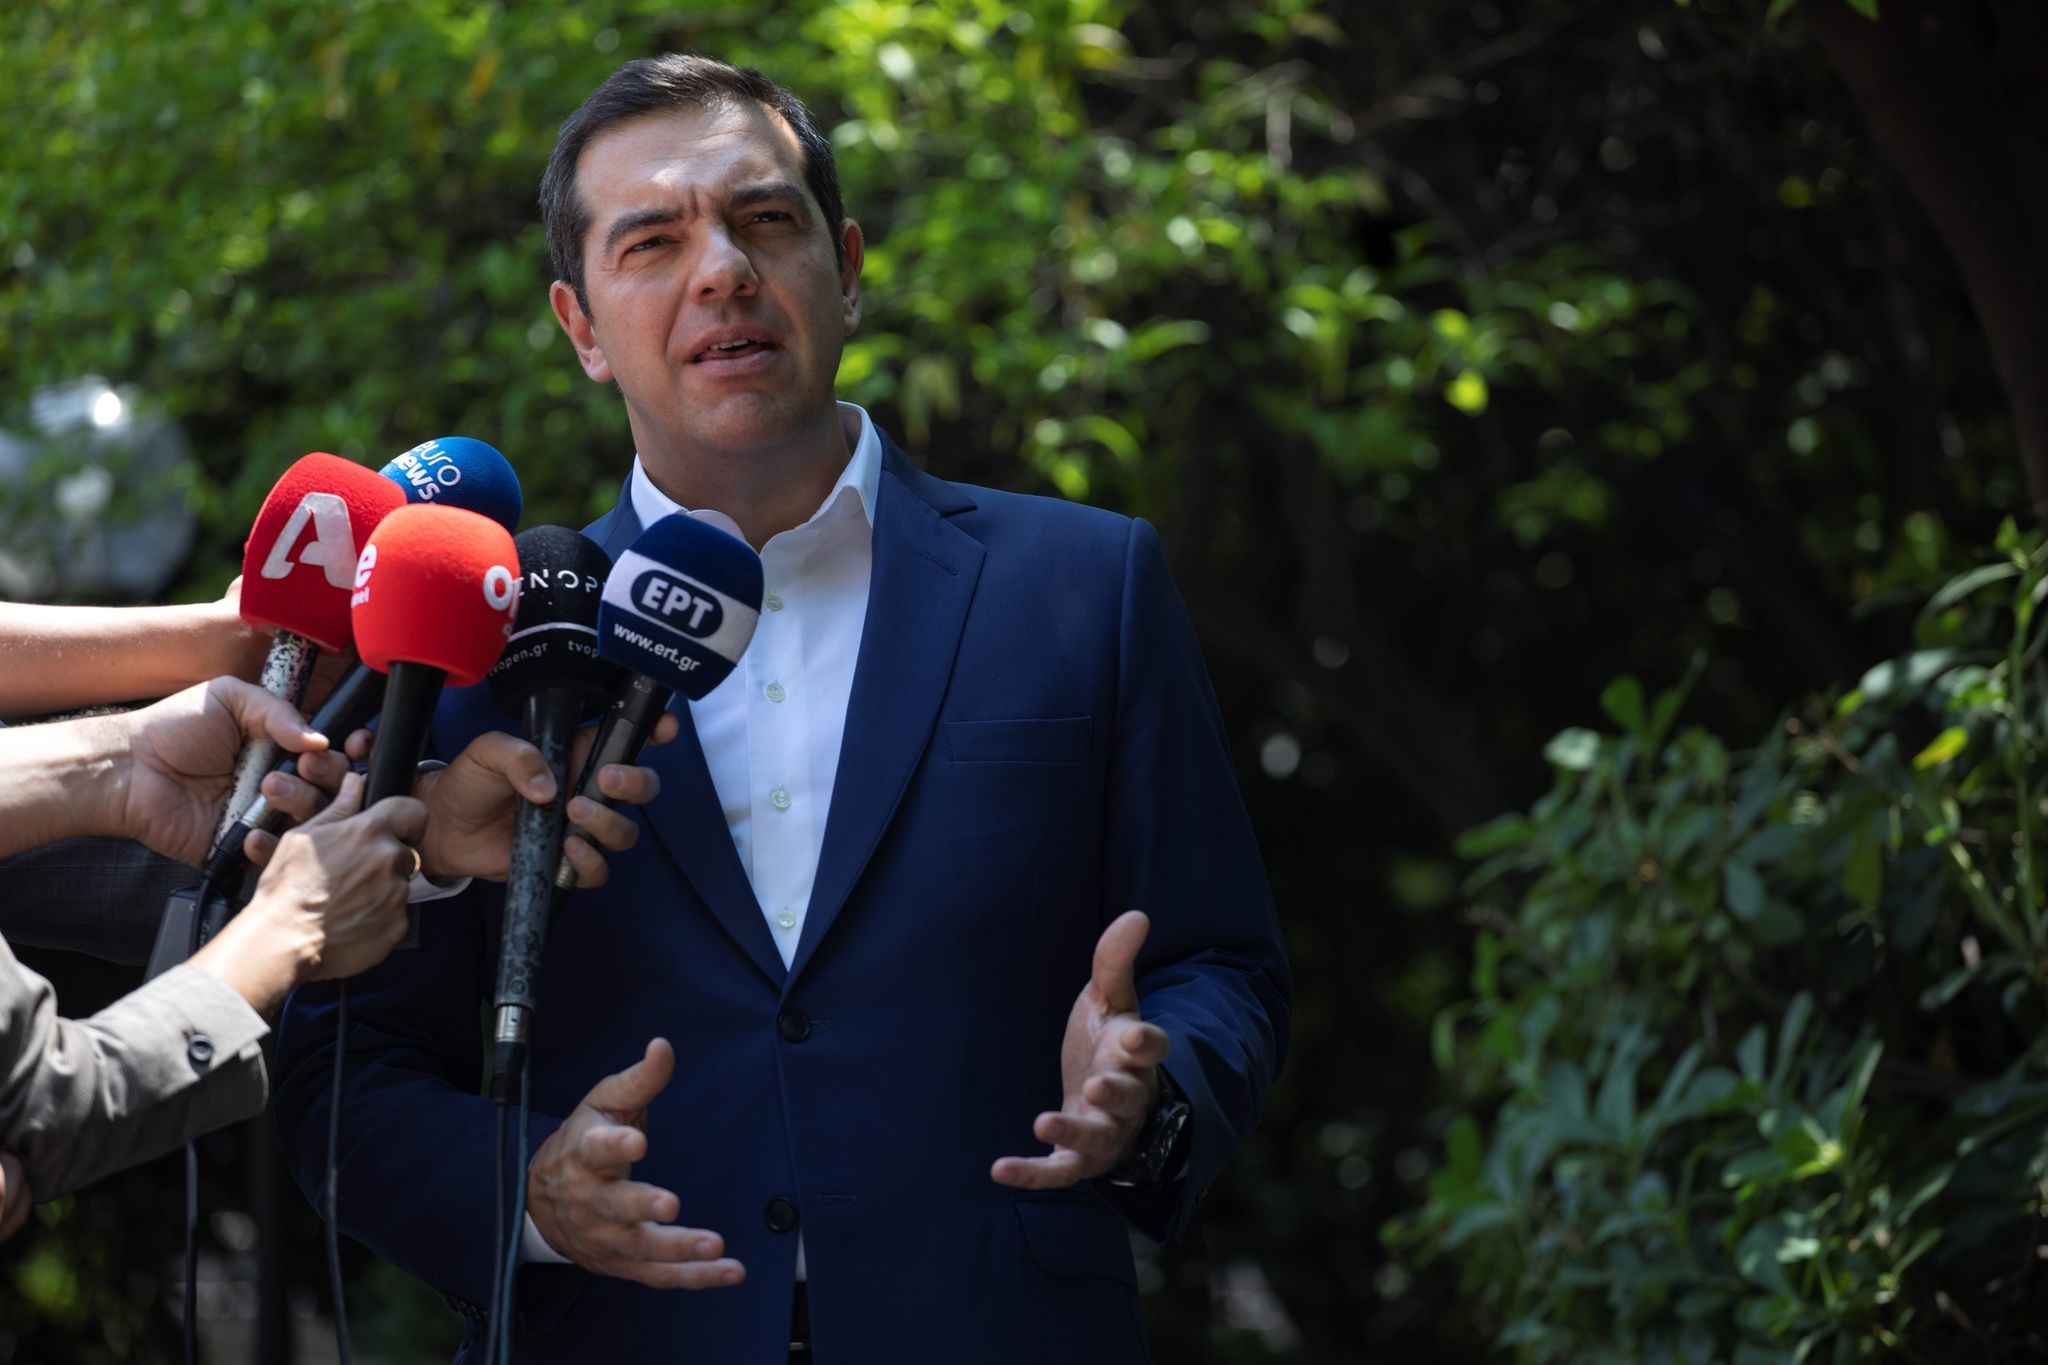 Conservative surge in EU elections upends Tsipras' coalition in Greece